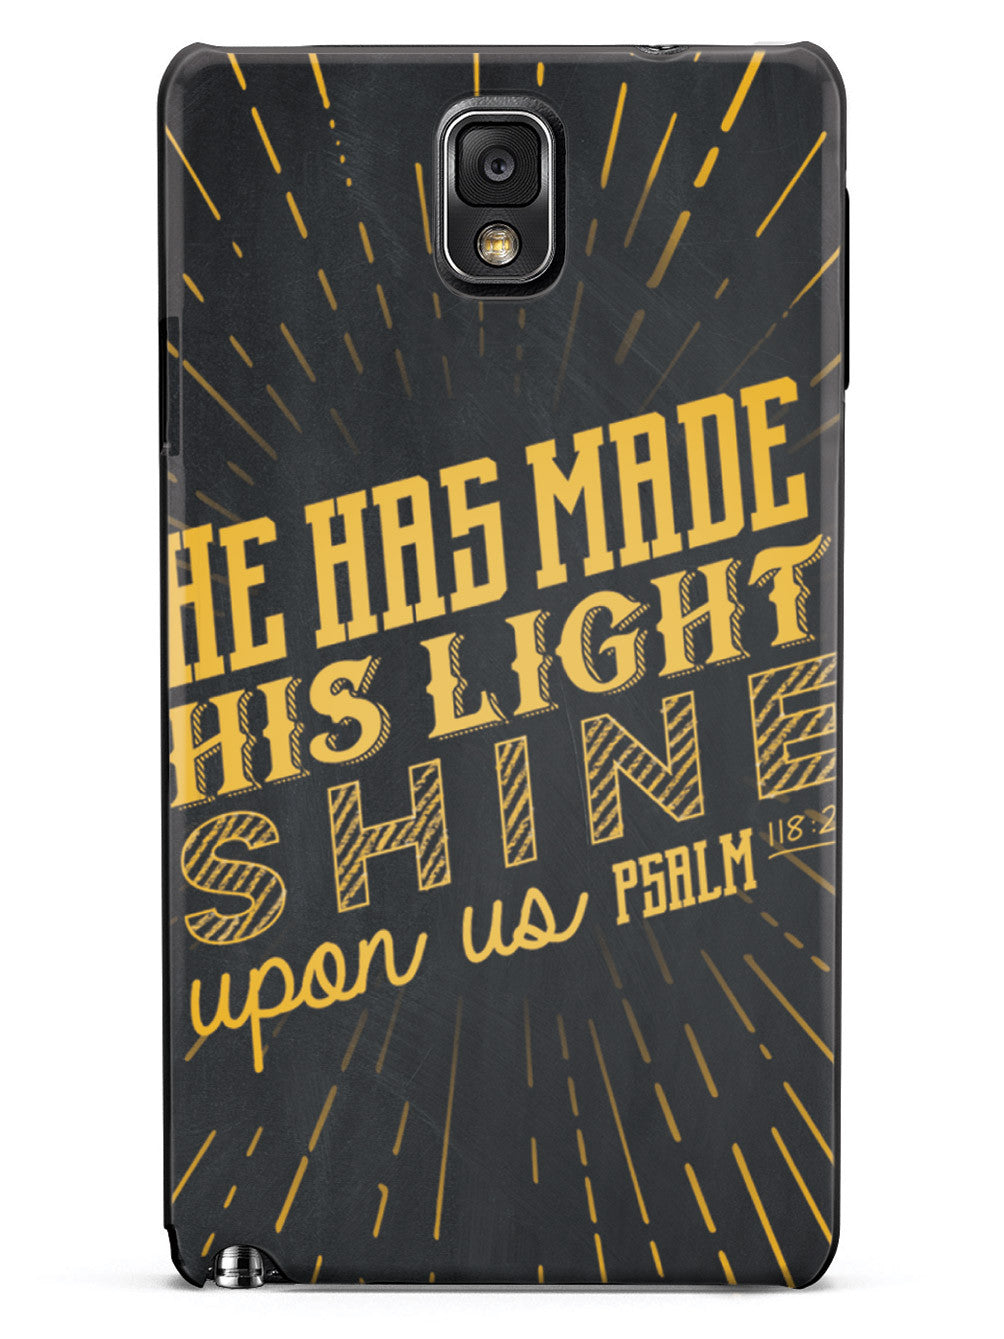 He Has Made His Light Shine Case